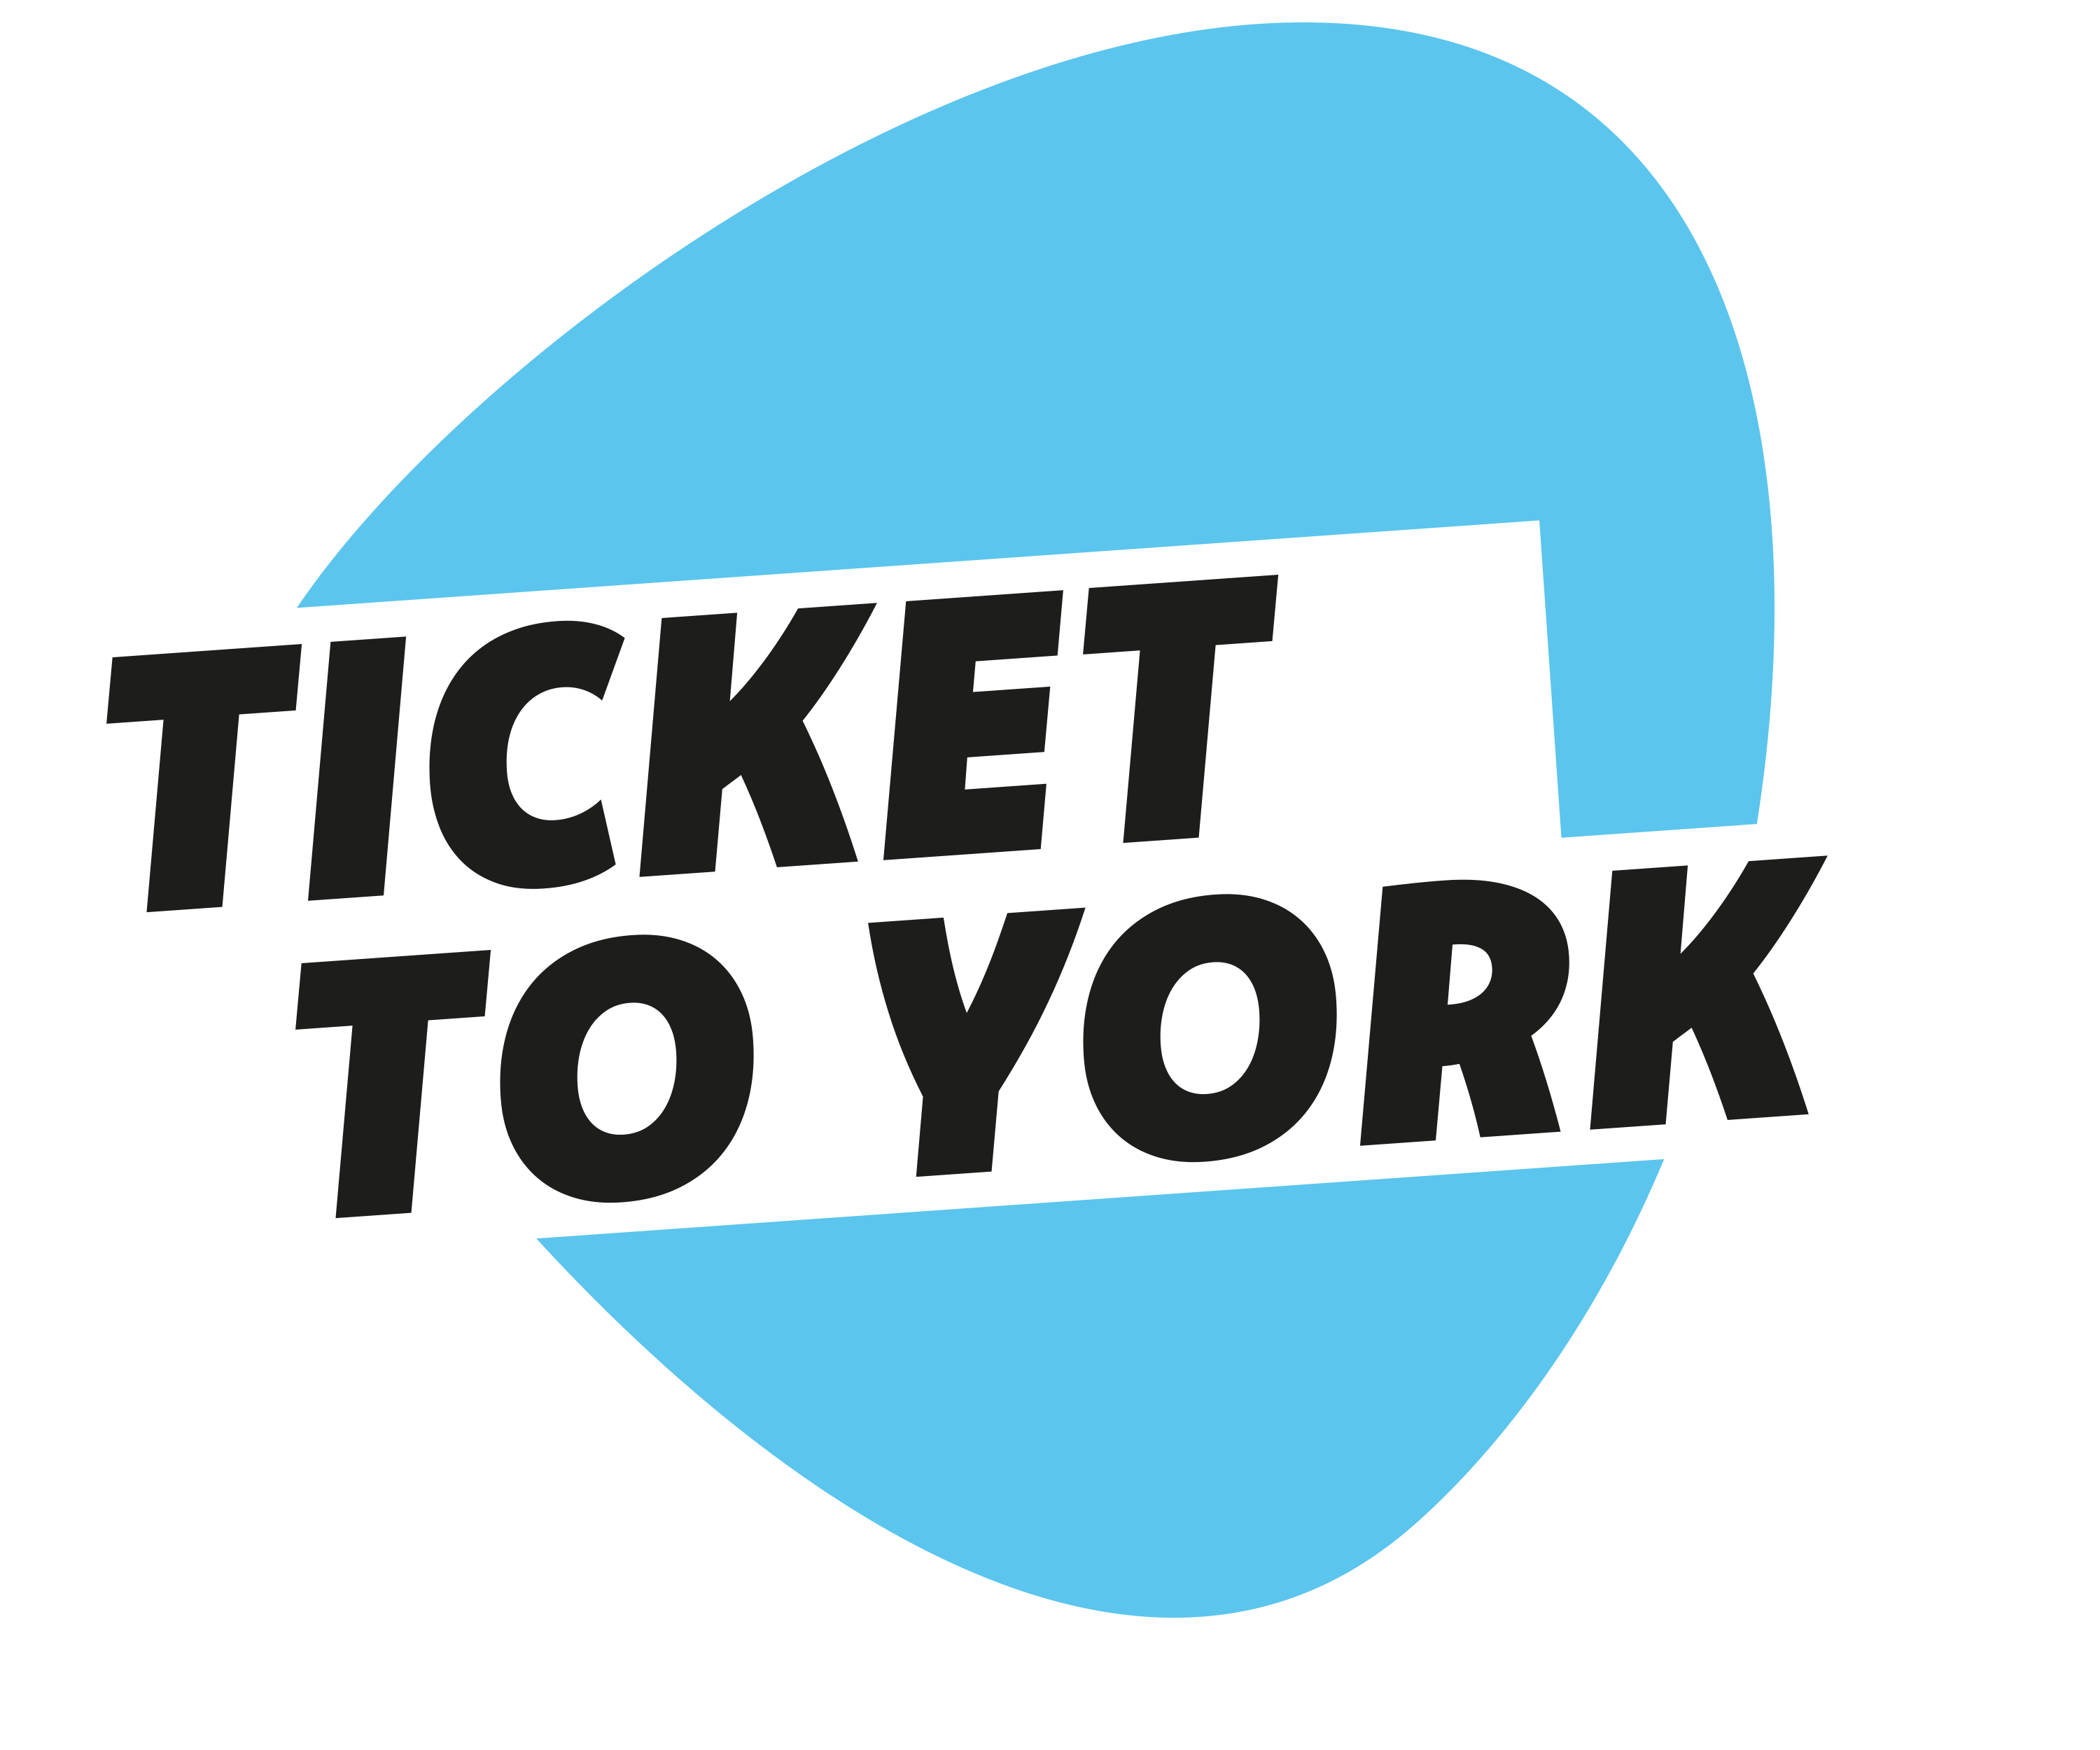 Ticket To York